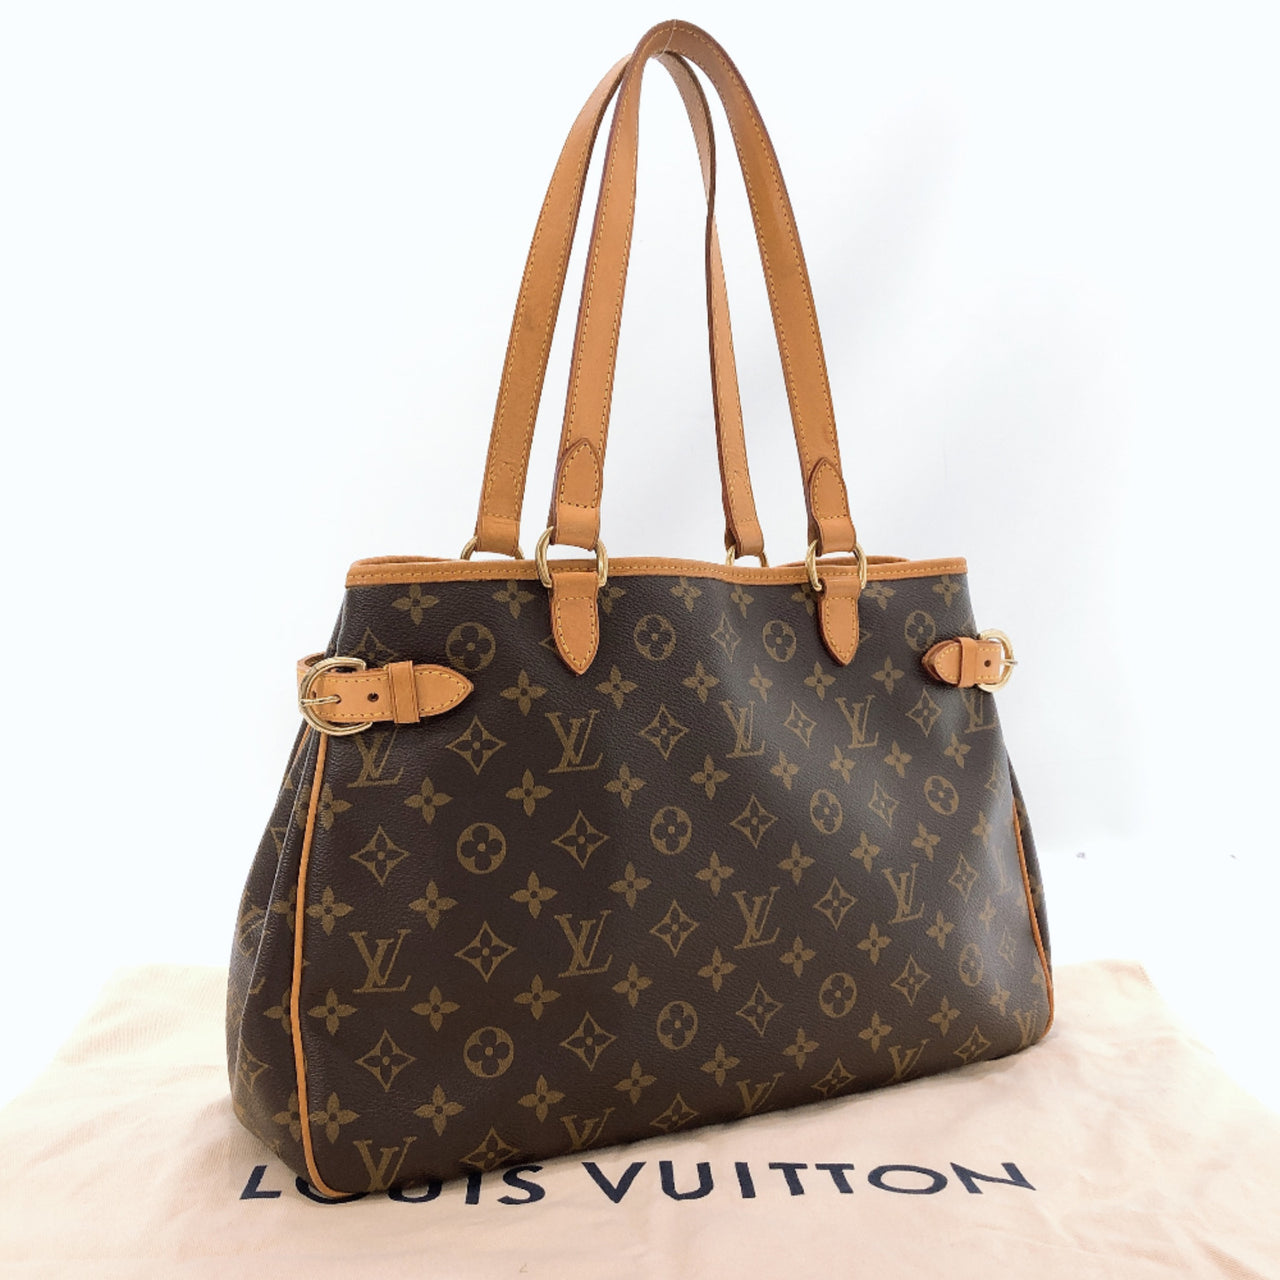 LOUIS VUITTON Tote Bag M51154 Batignolles Horizontal Monogram Brown Women Used